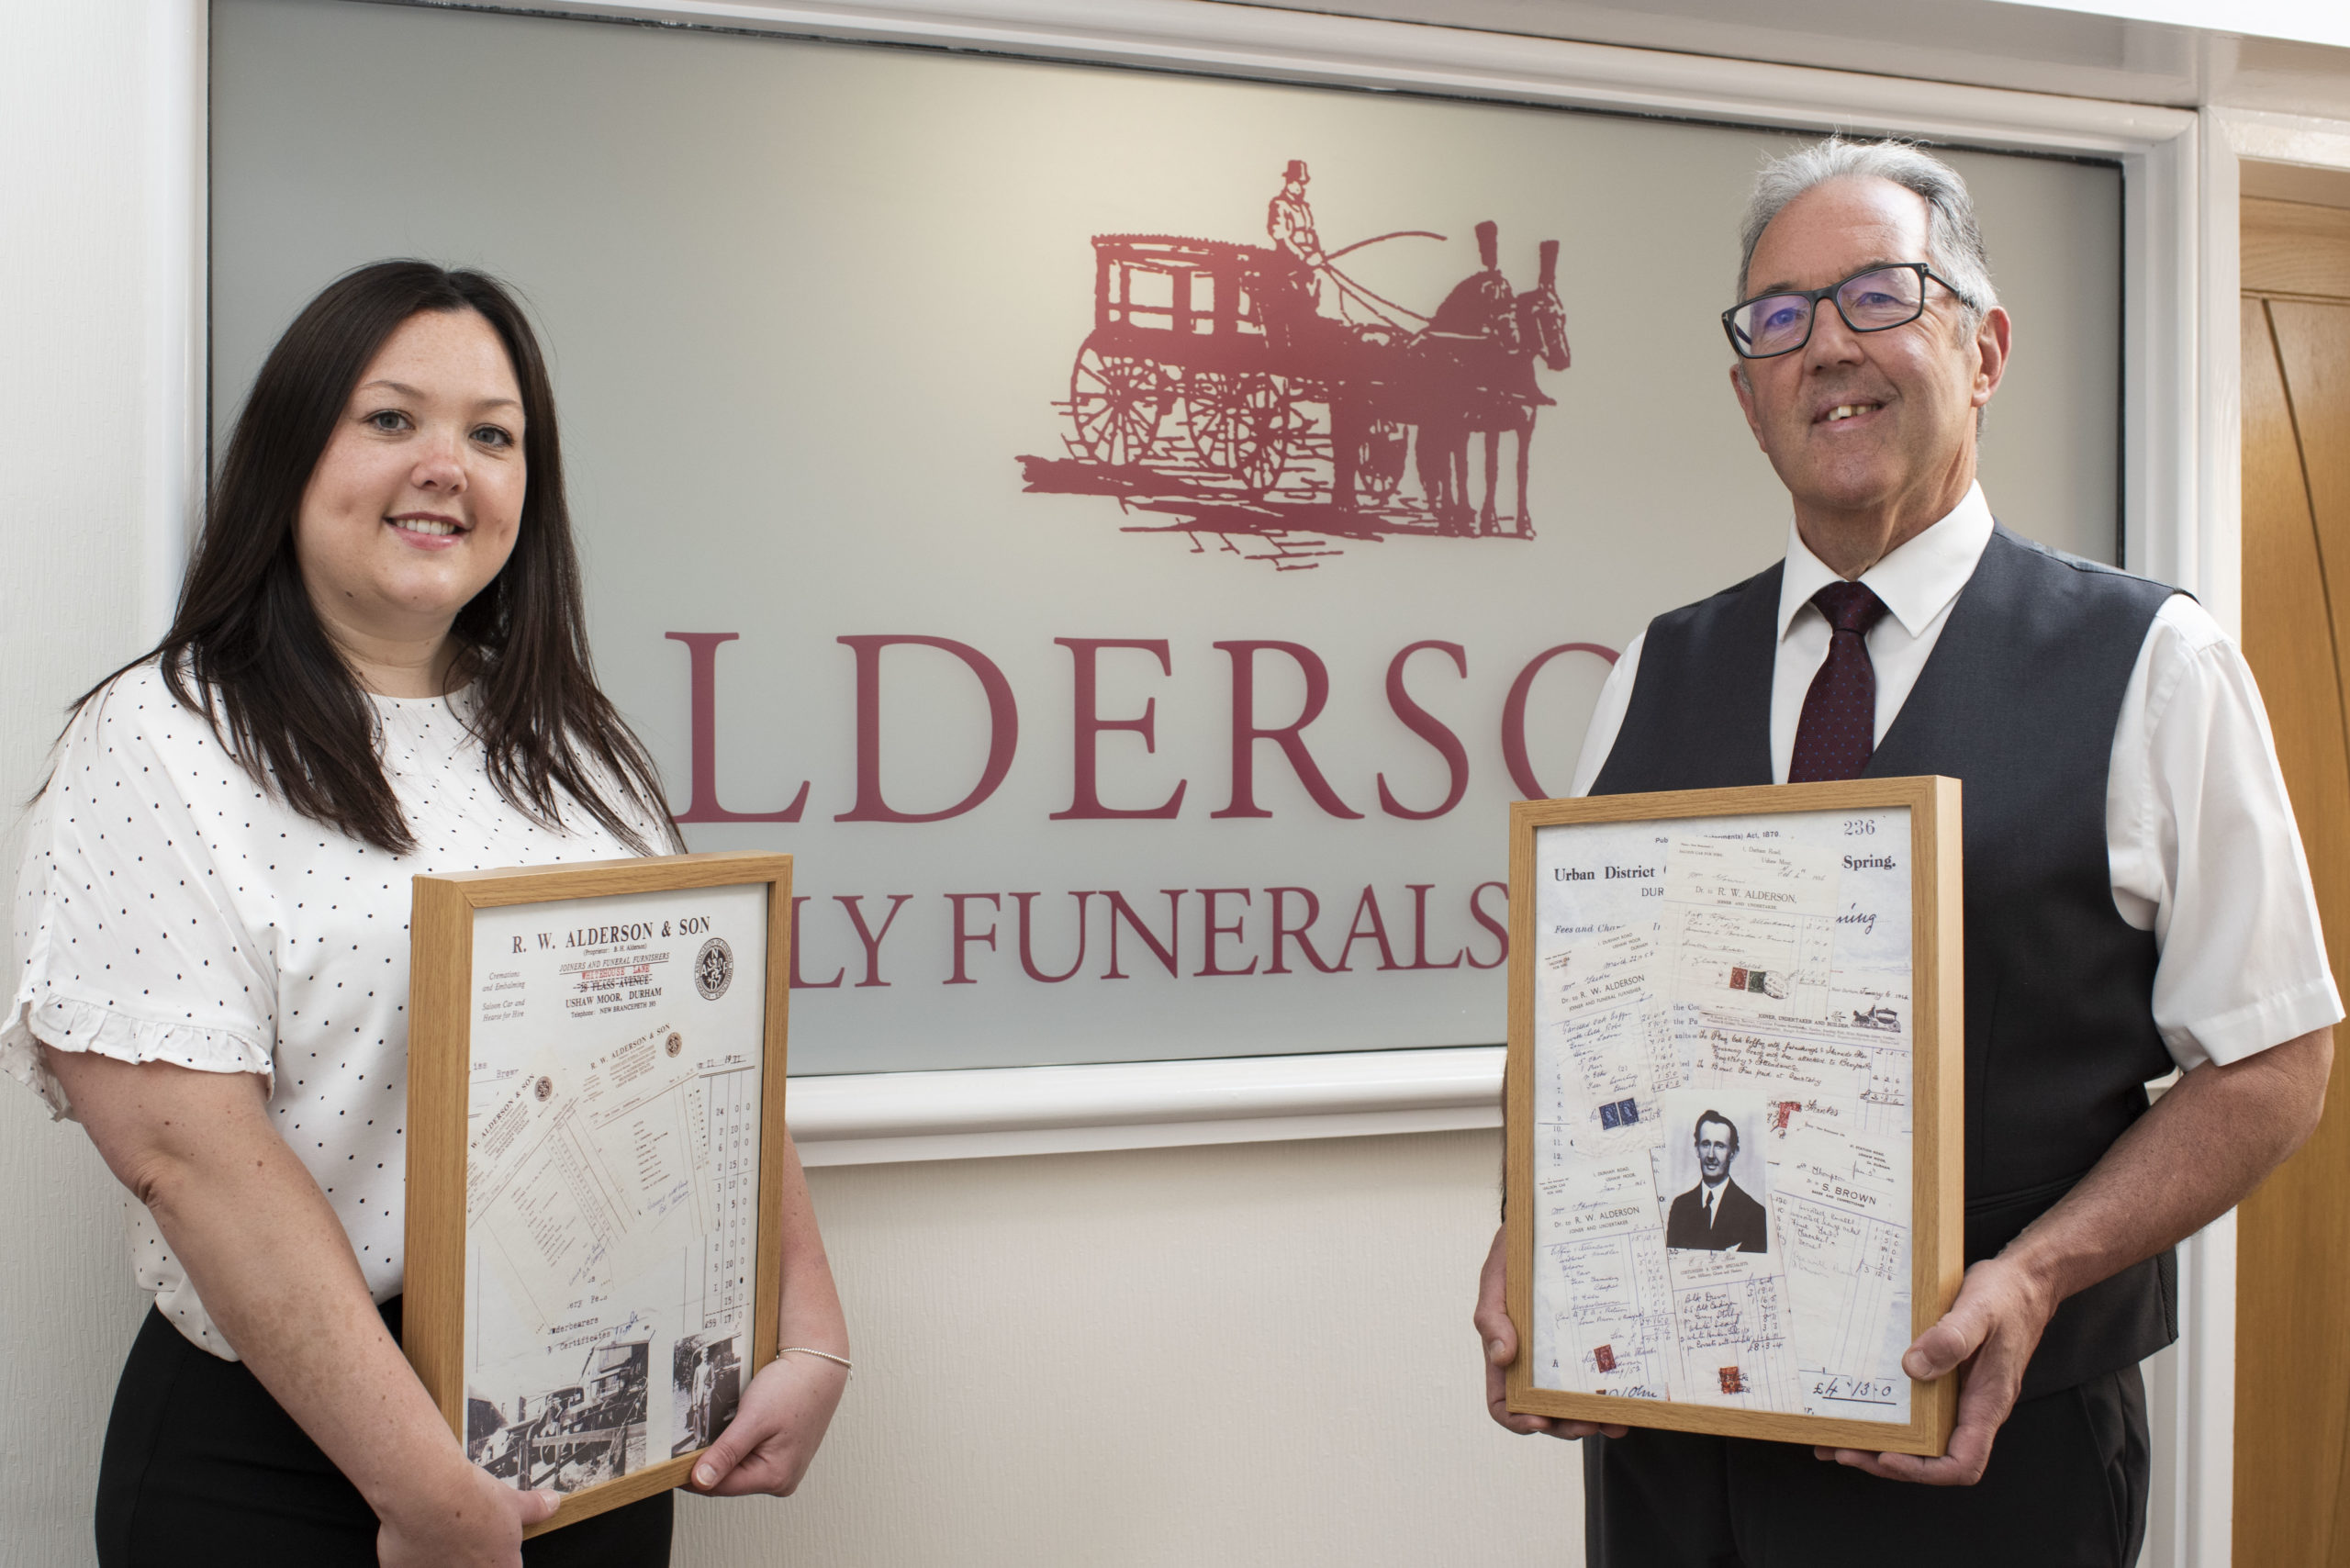 Alderson's Family Funerals Celebrating A Century Of Serving Its Local Community